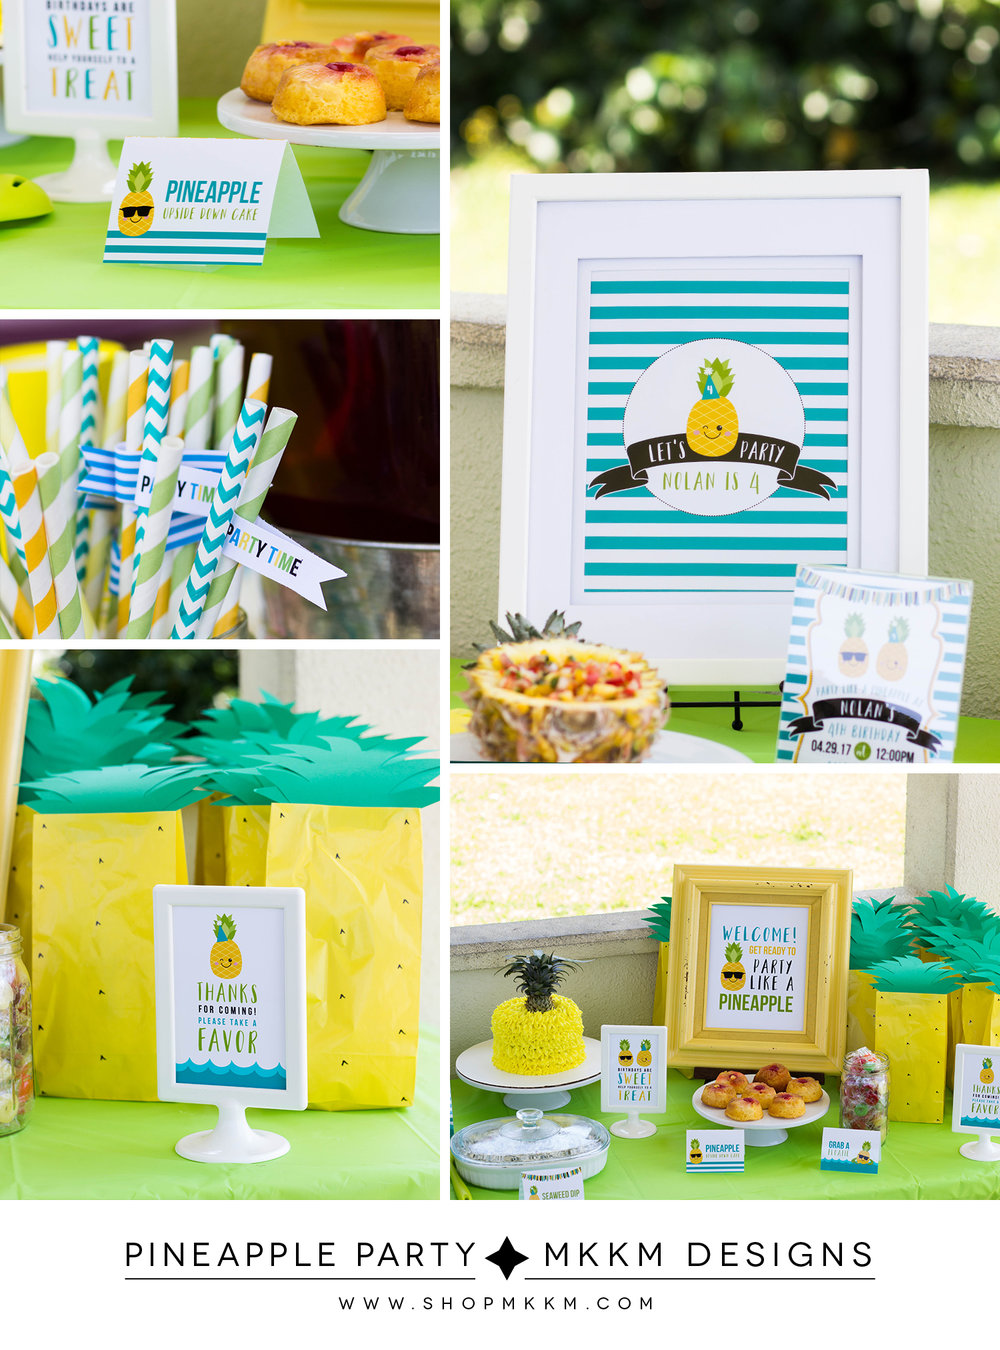 Pineapple party decor and free printable favor sign // mkkm designs